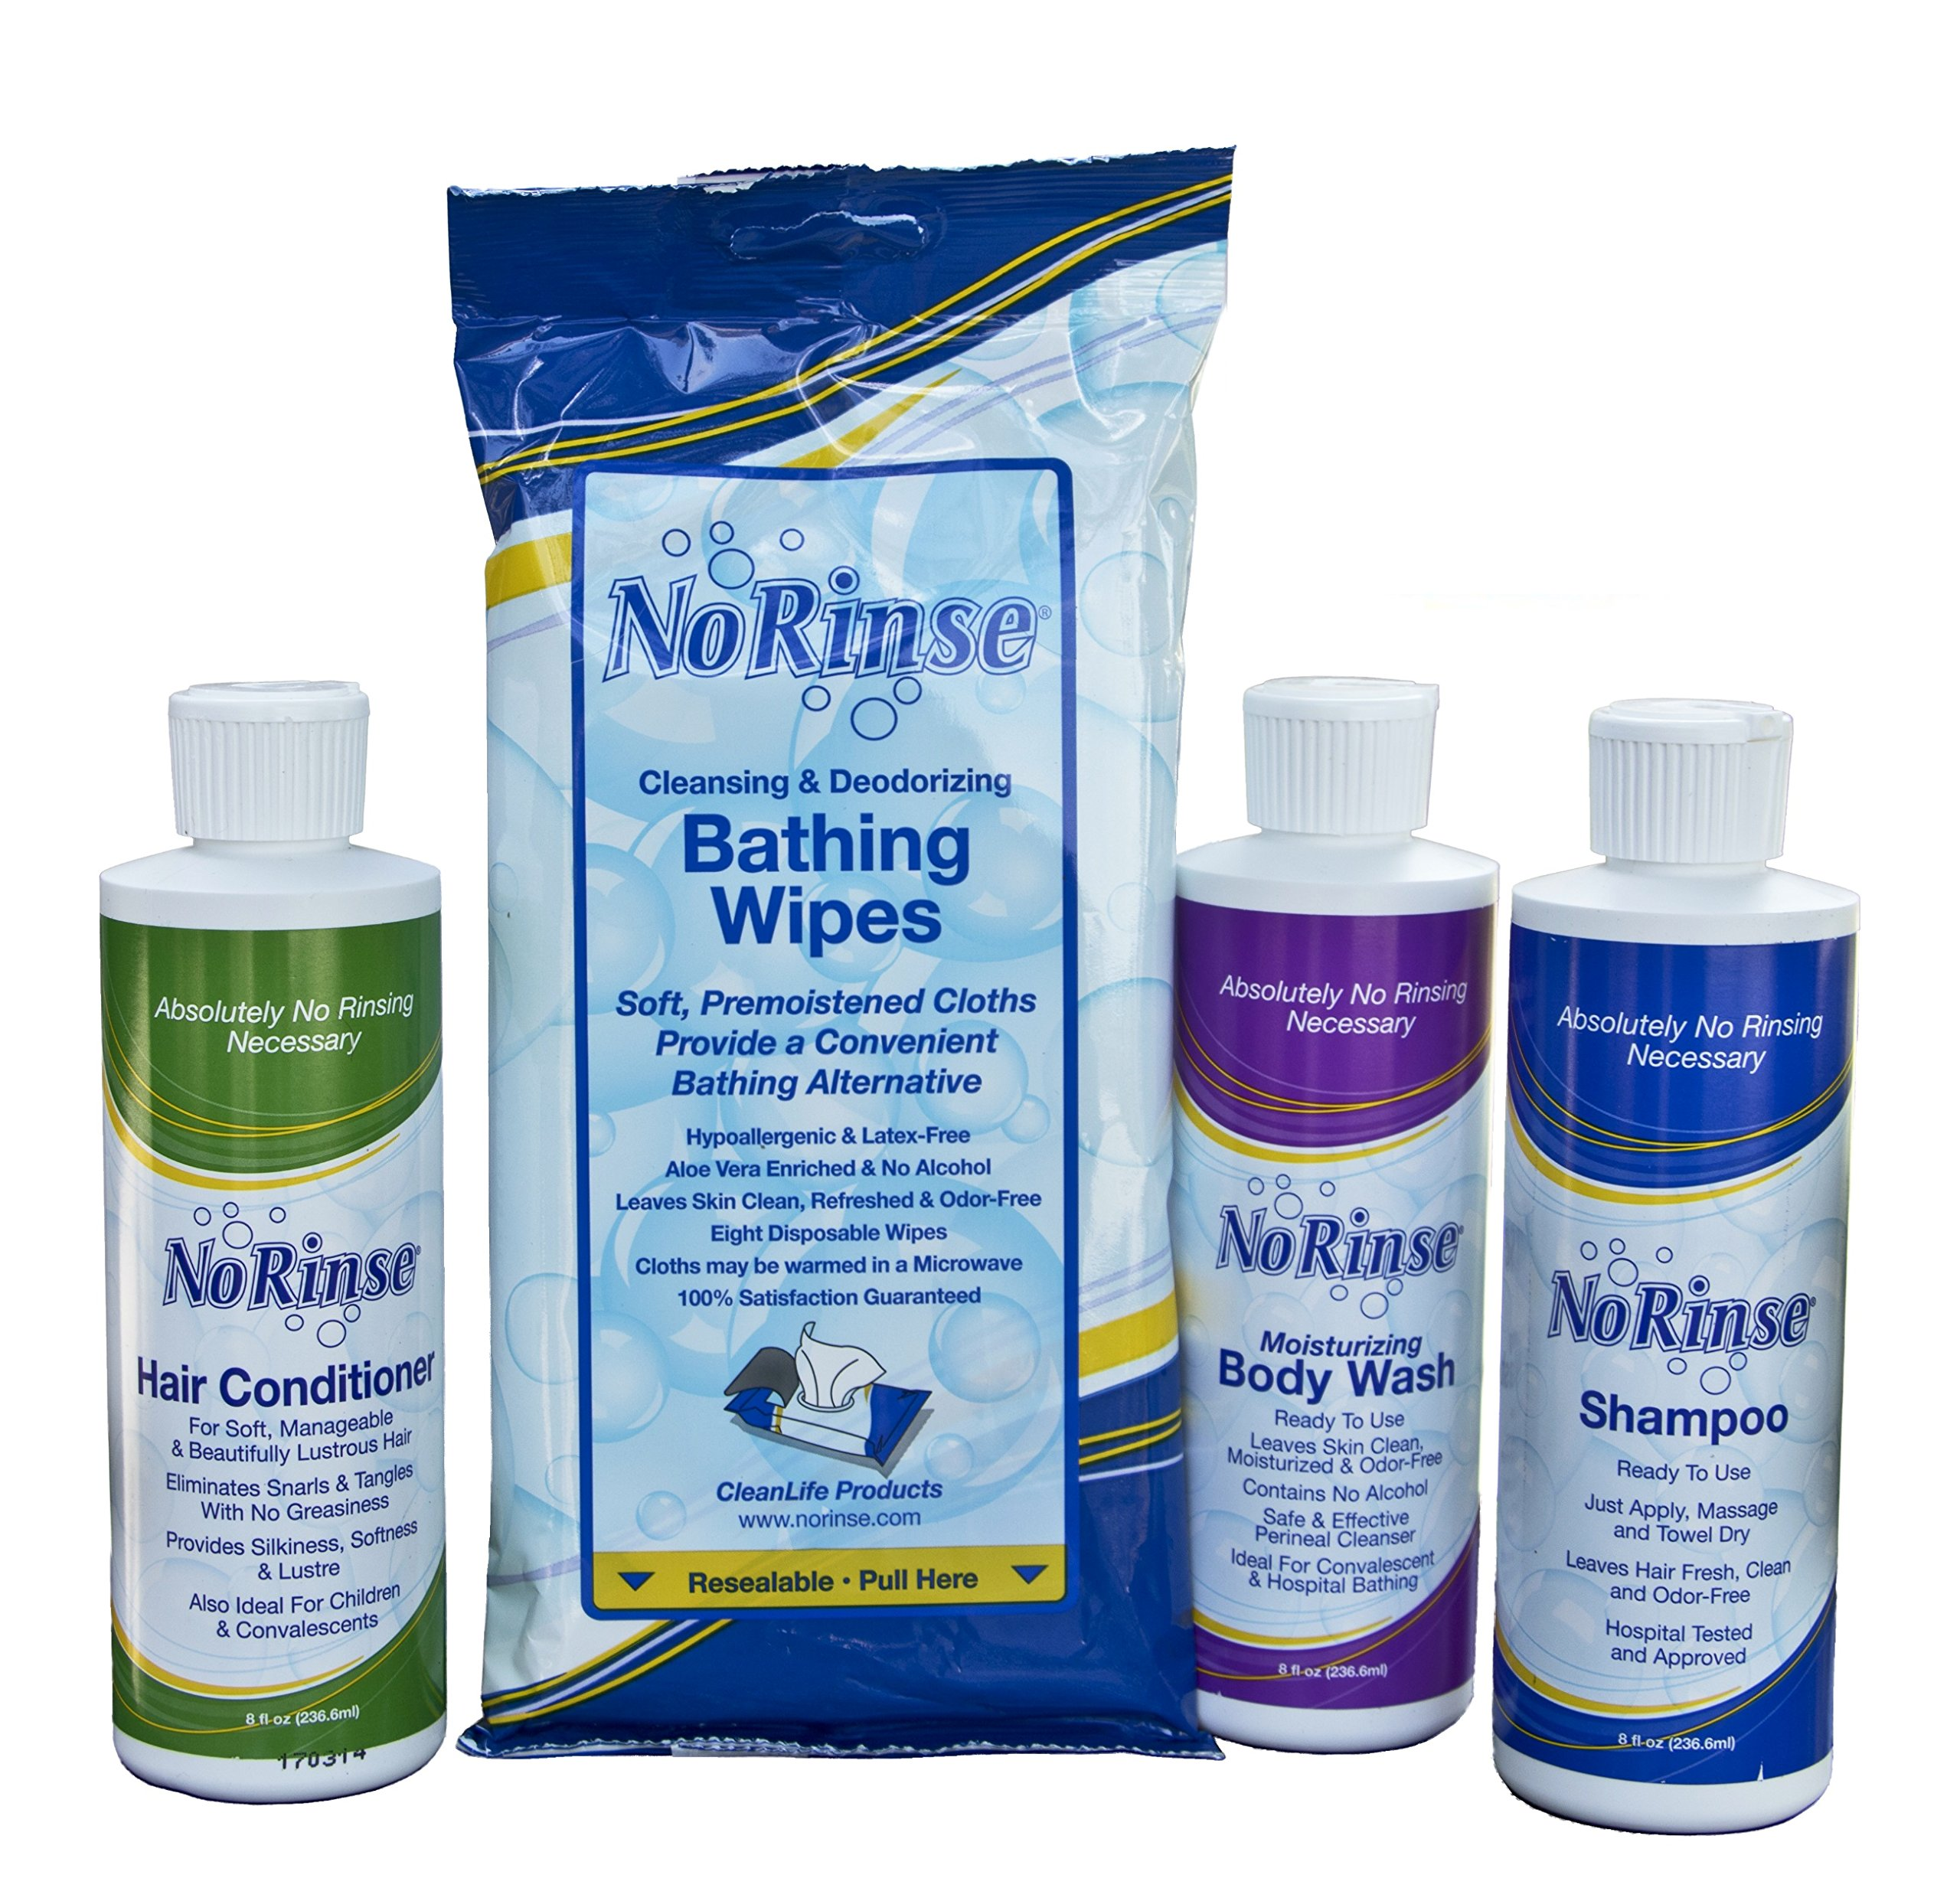 NoRinse Shampoo, Conditioner, Body Wash, and Bathing Wipes Road Trip Bundle Set